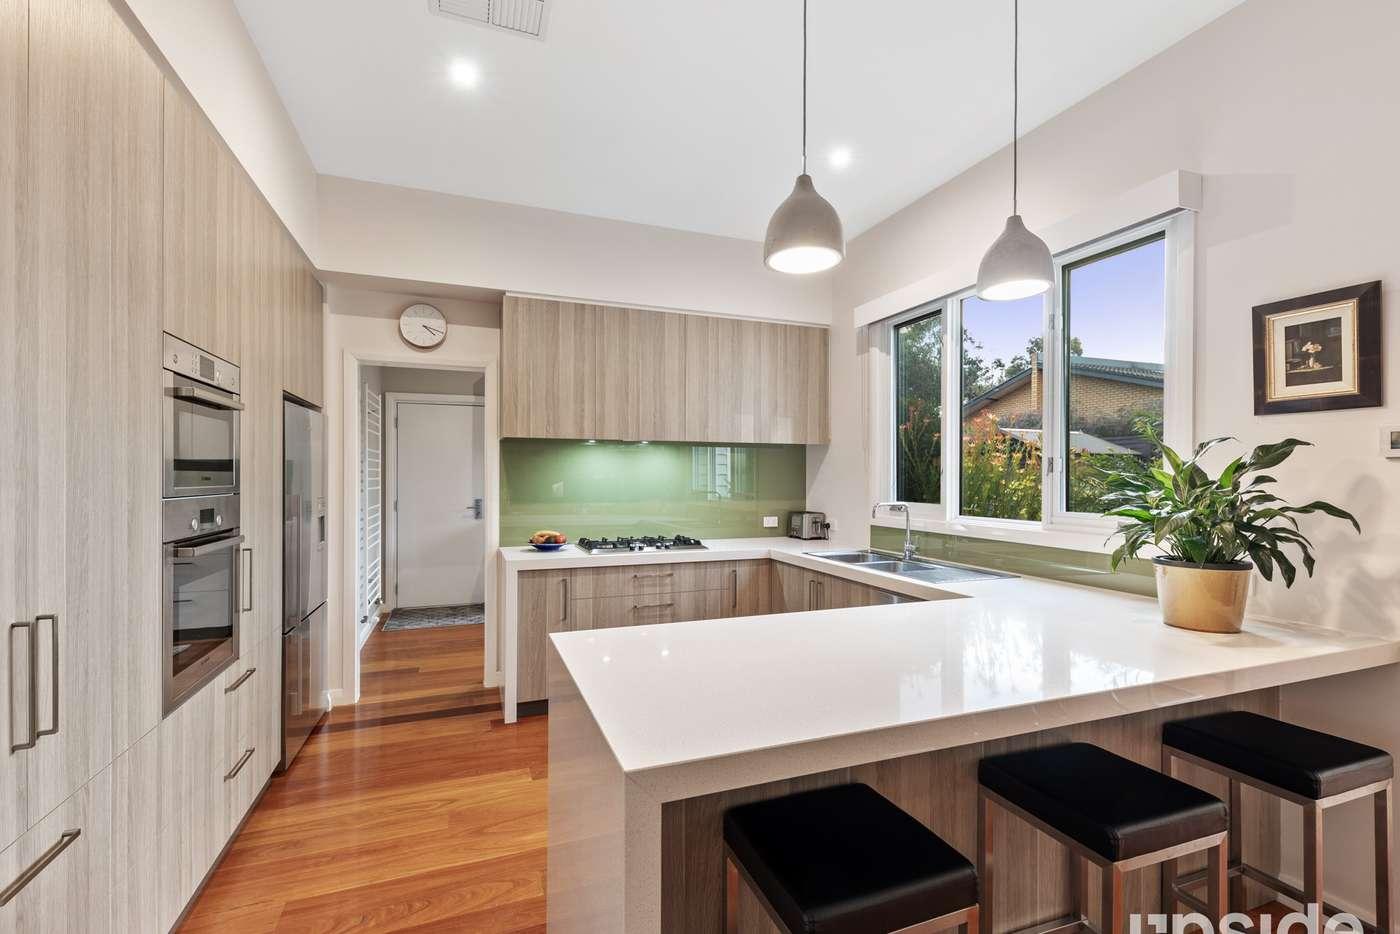 Fifth view of Homely house listing, 20 Ailsa Grove, Ivanhoe VIC 3079